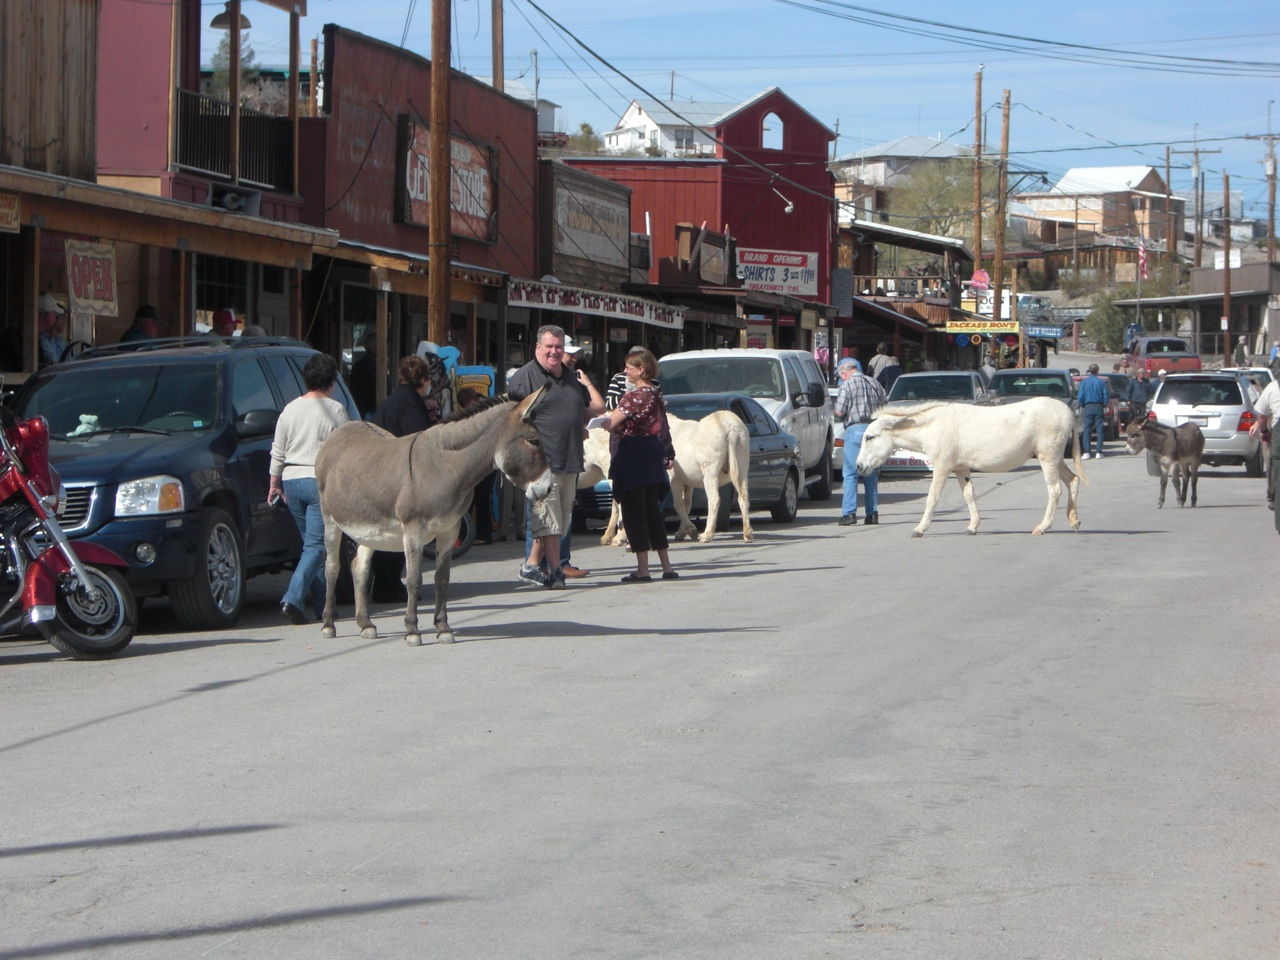 Burros Roaming The Streets Looking For Carrots